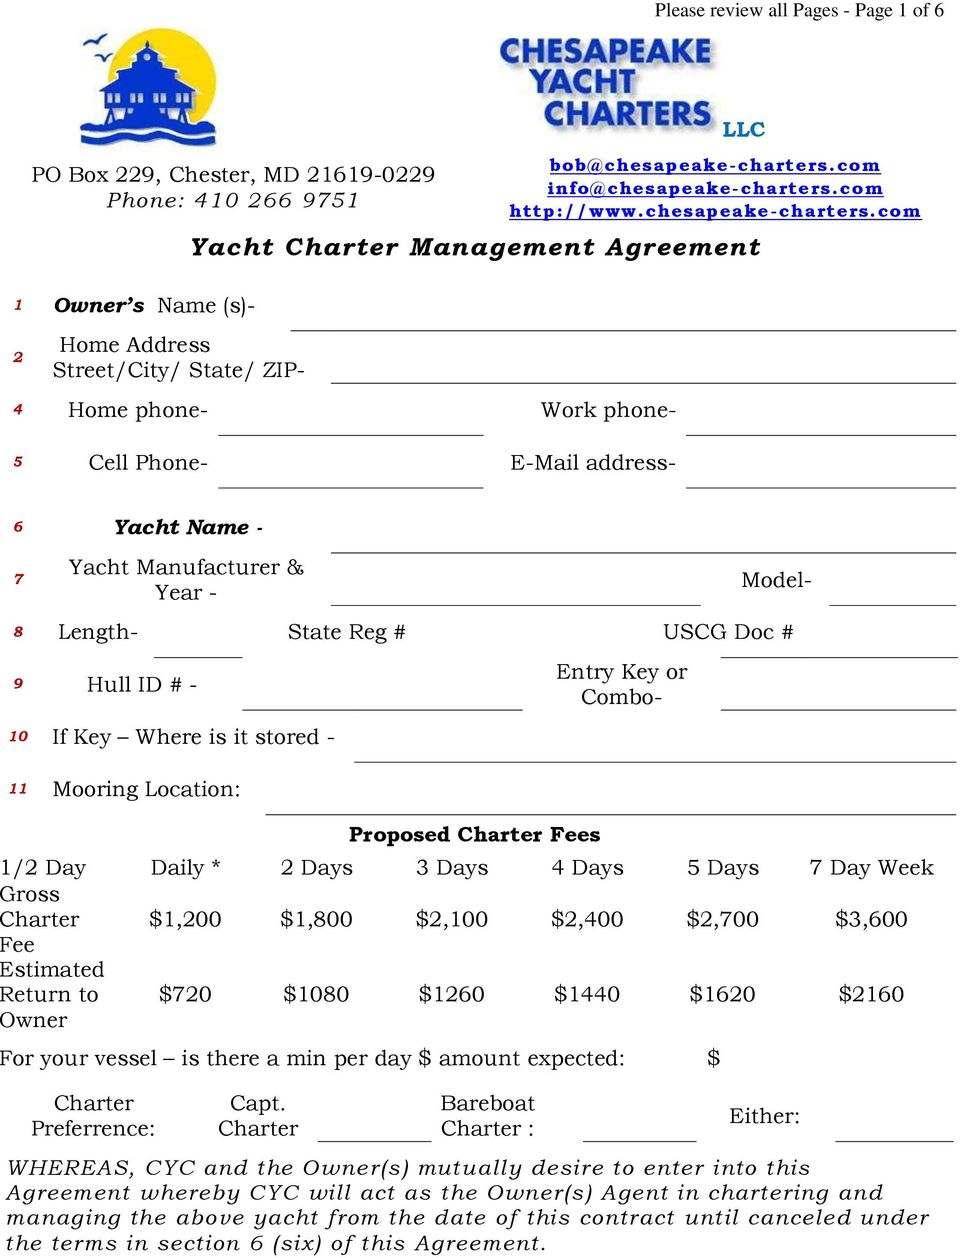 com Yacht Charter Management Agreement 2 Home Address Street/City/ State/ ZIP- 4 Home phone- Work phone- 5 Cell Phone- E-Mail address- 6 Yacht Name - 7 Yacht Manufacturer & Year - Model- 8 Length-